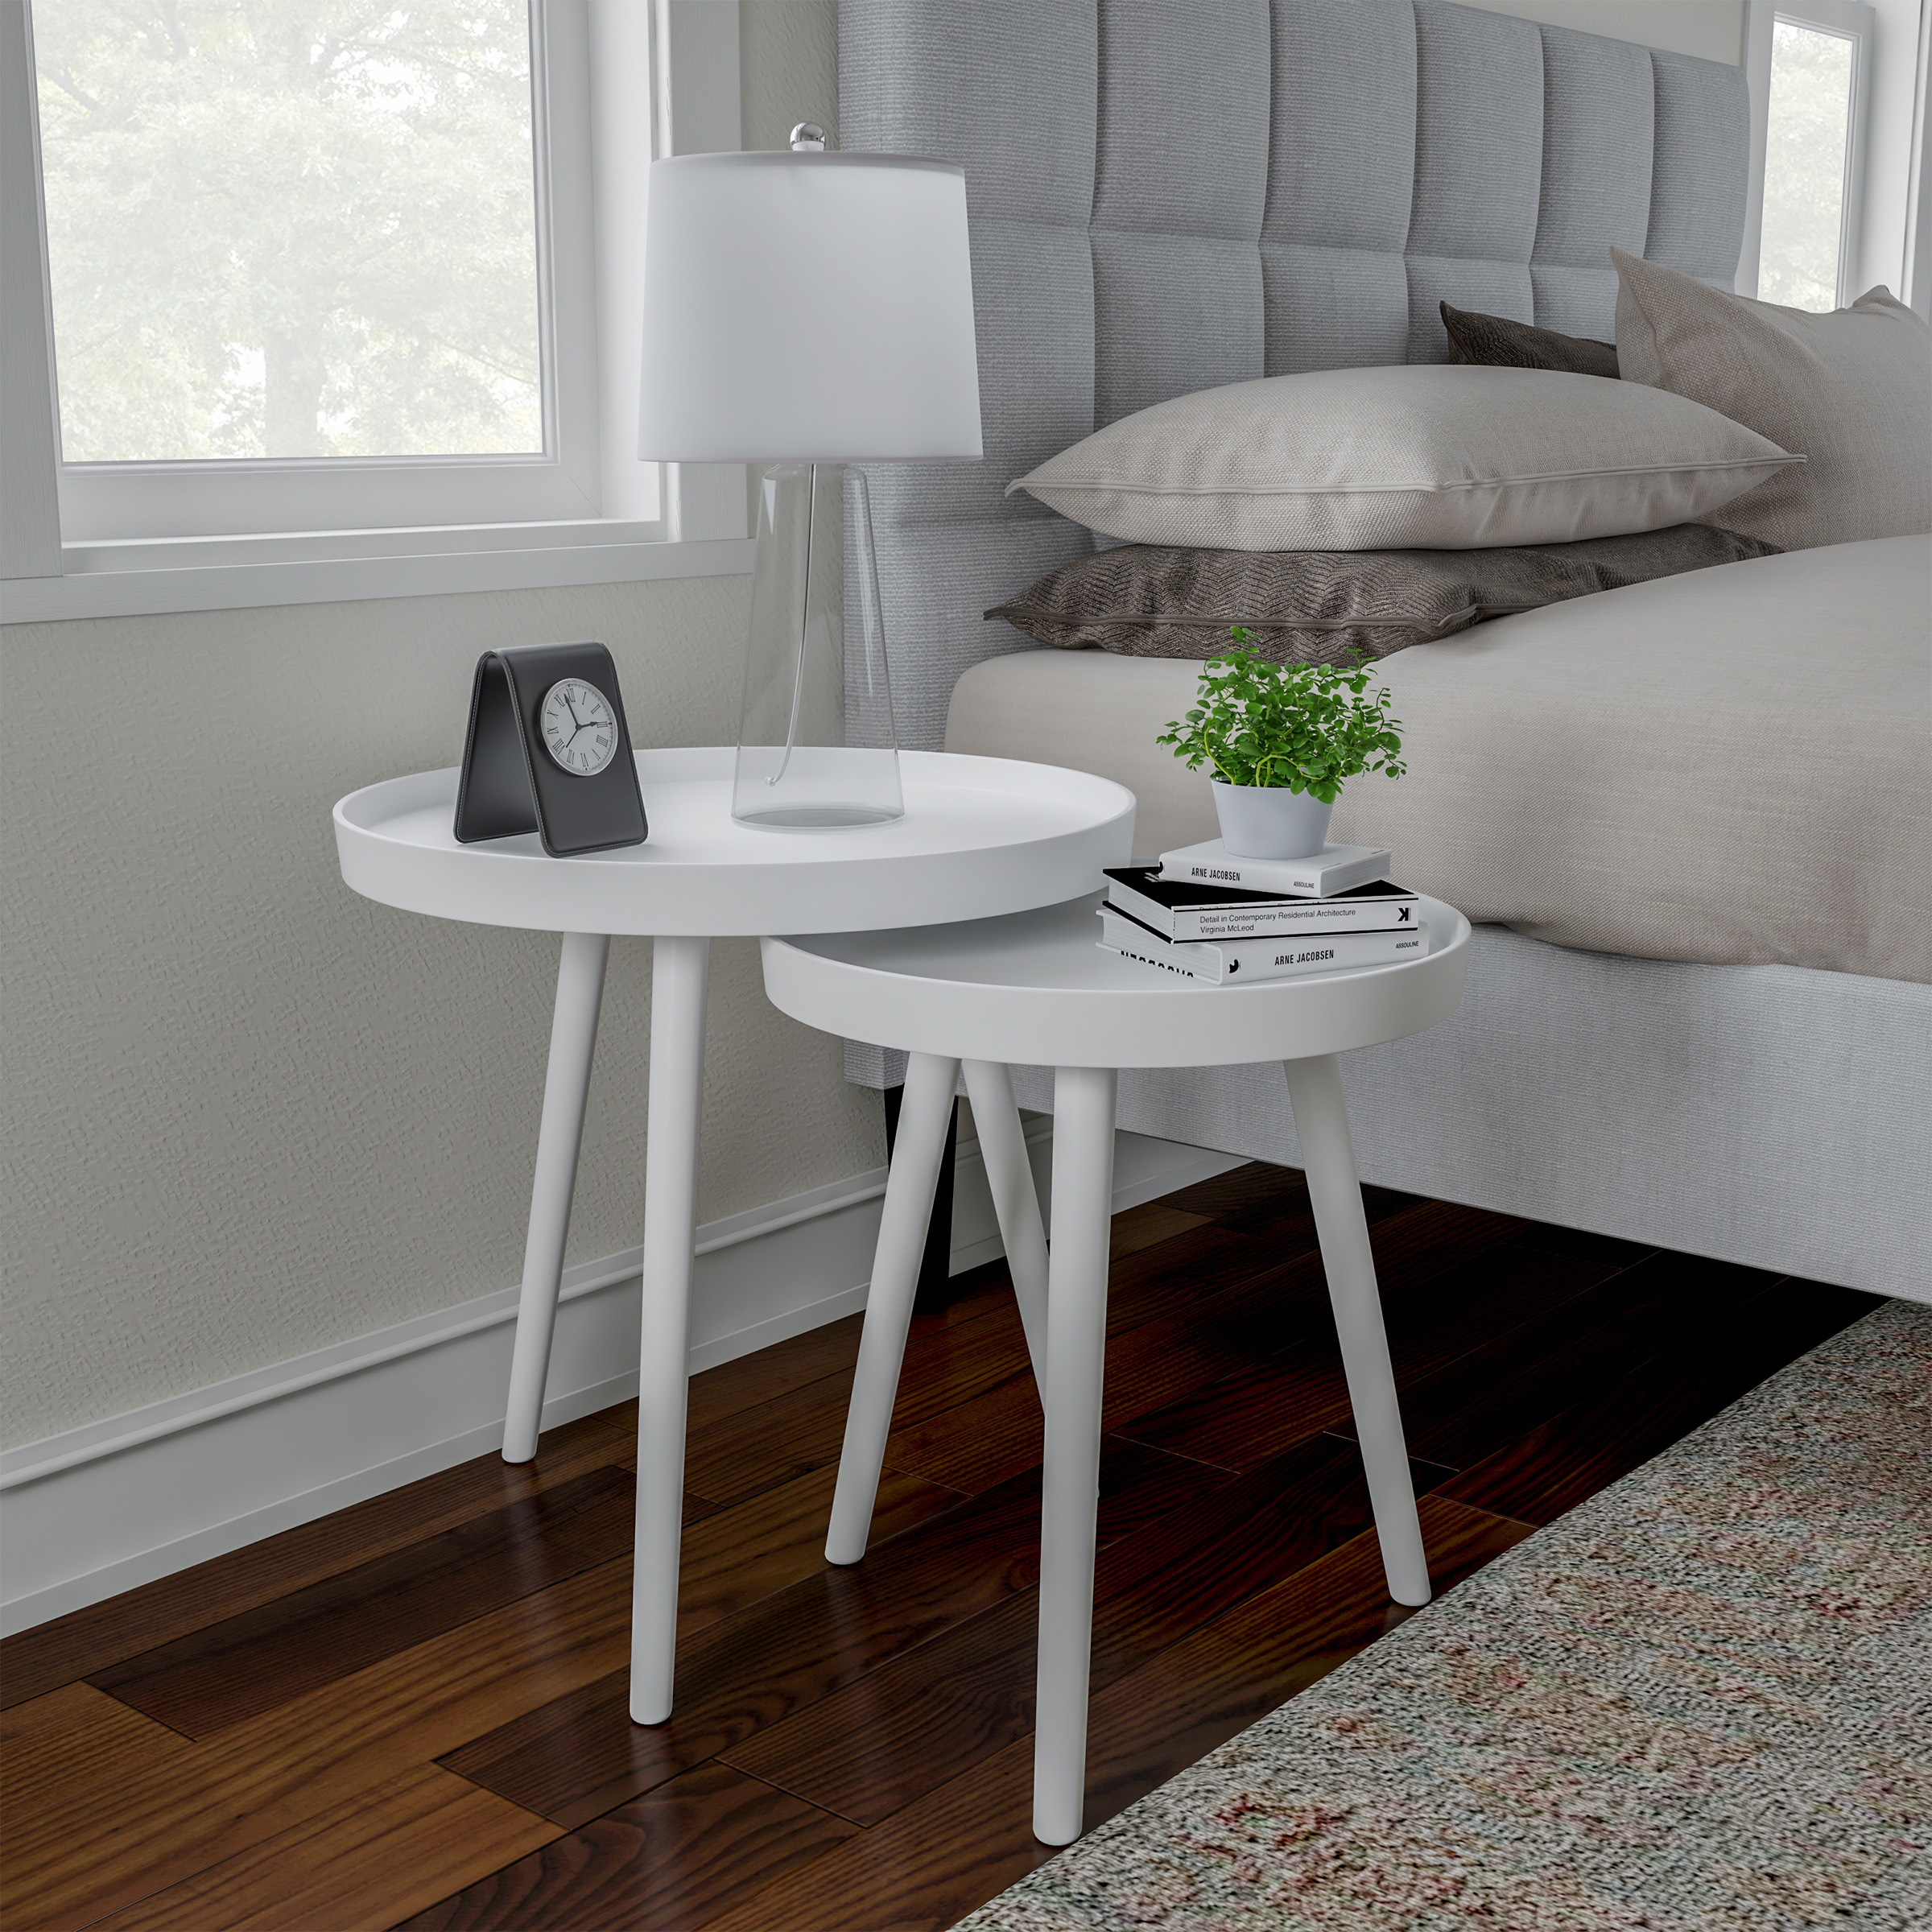 Nesting End Tables Circular Mid-Century Modern MDF Wood Contemporary Décor Home Accent Table with Tray Top (White, Set of 2)